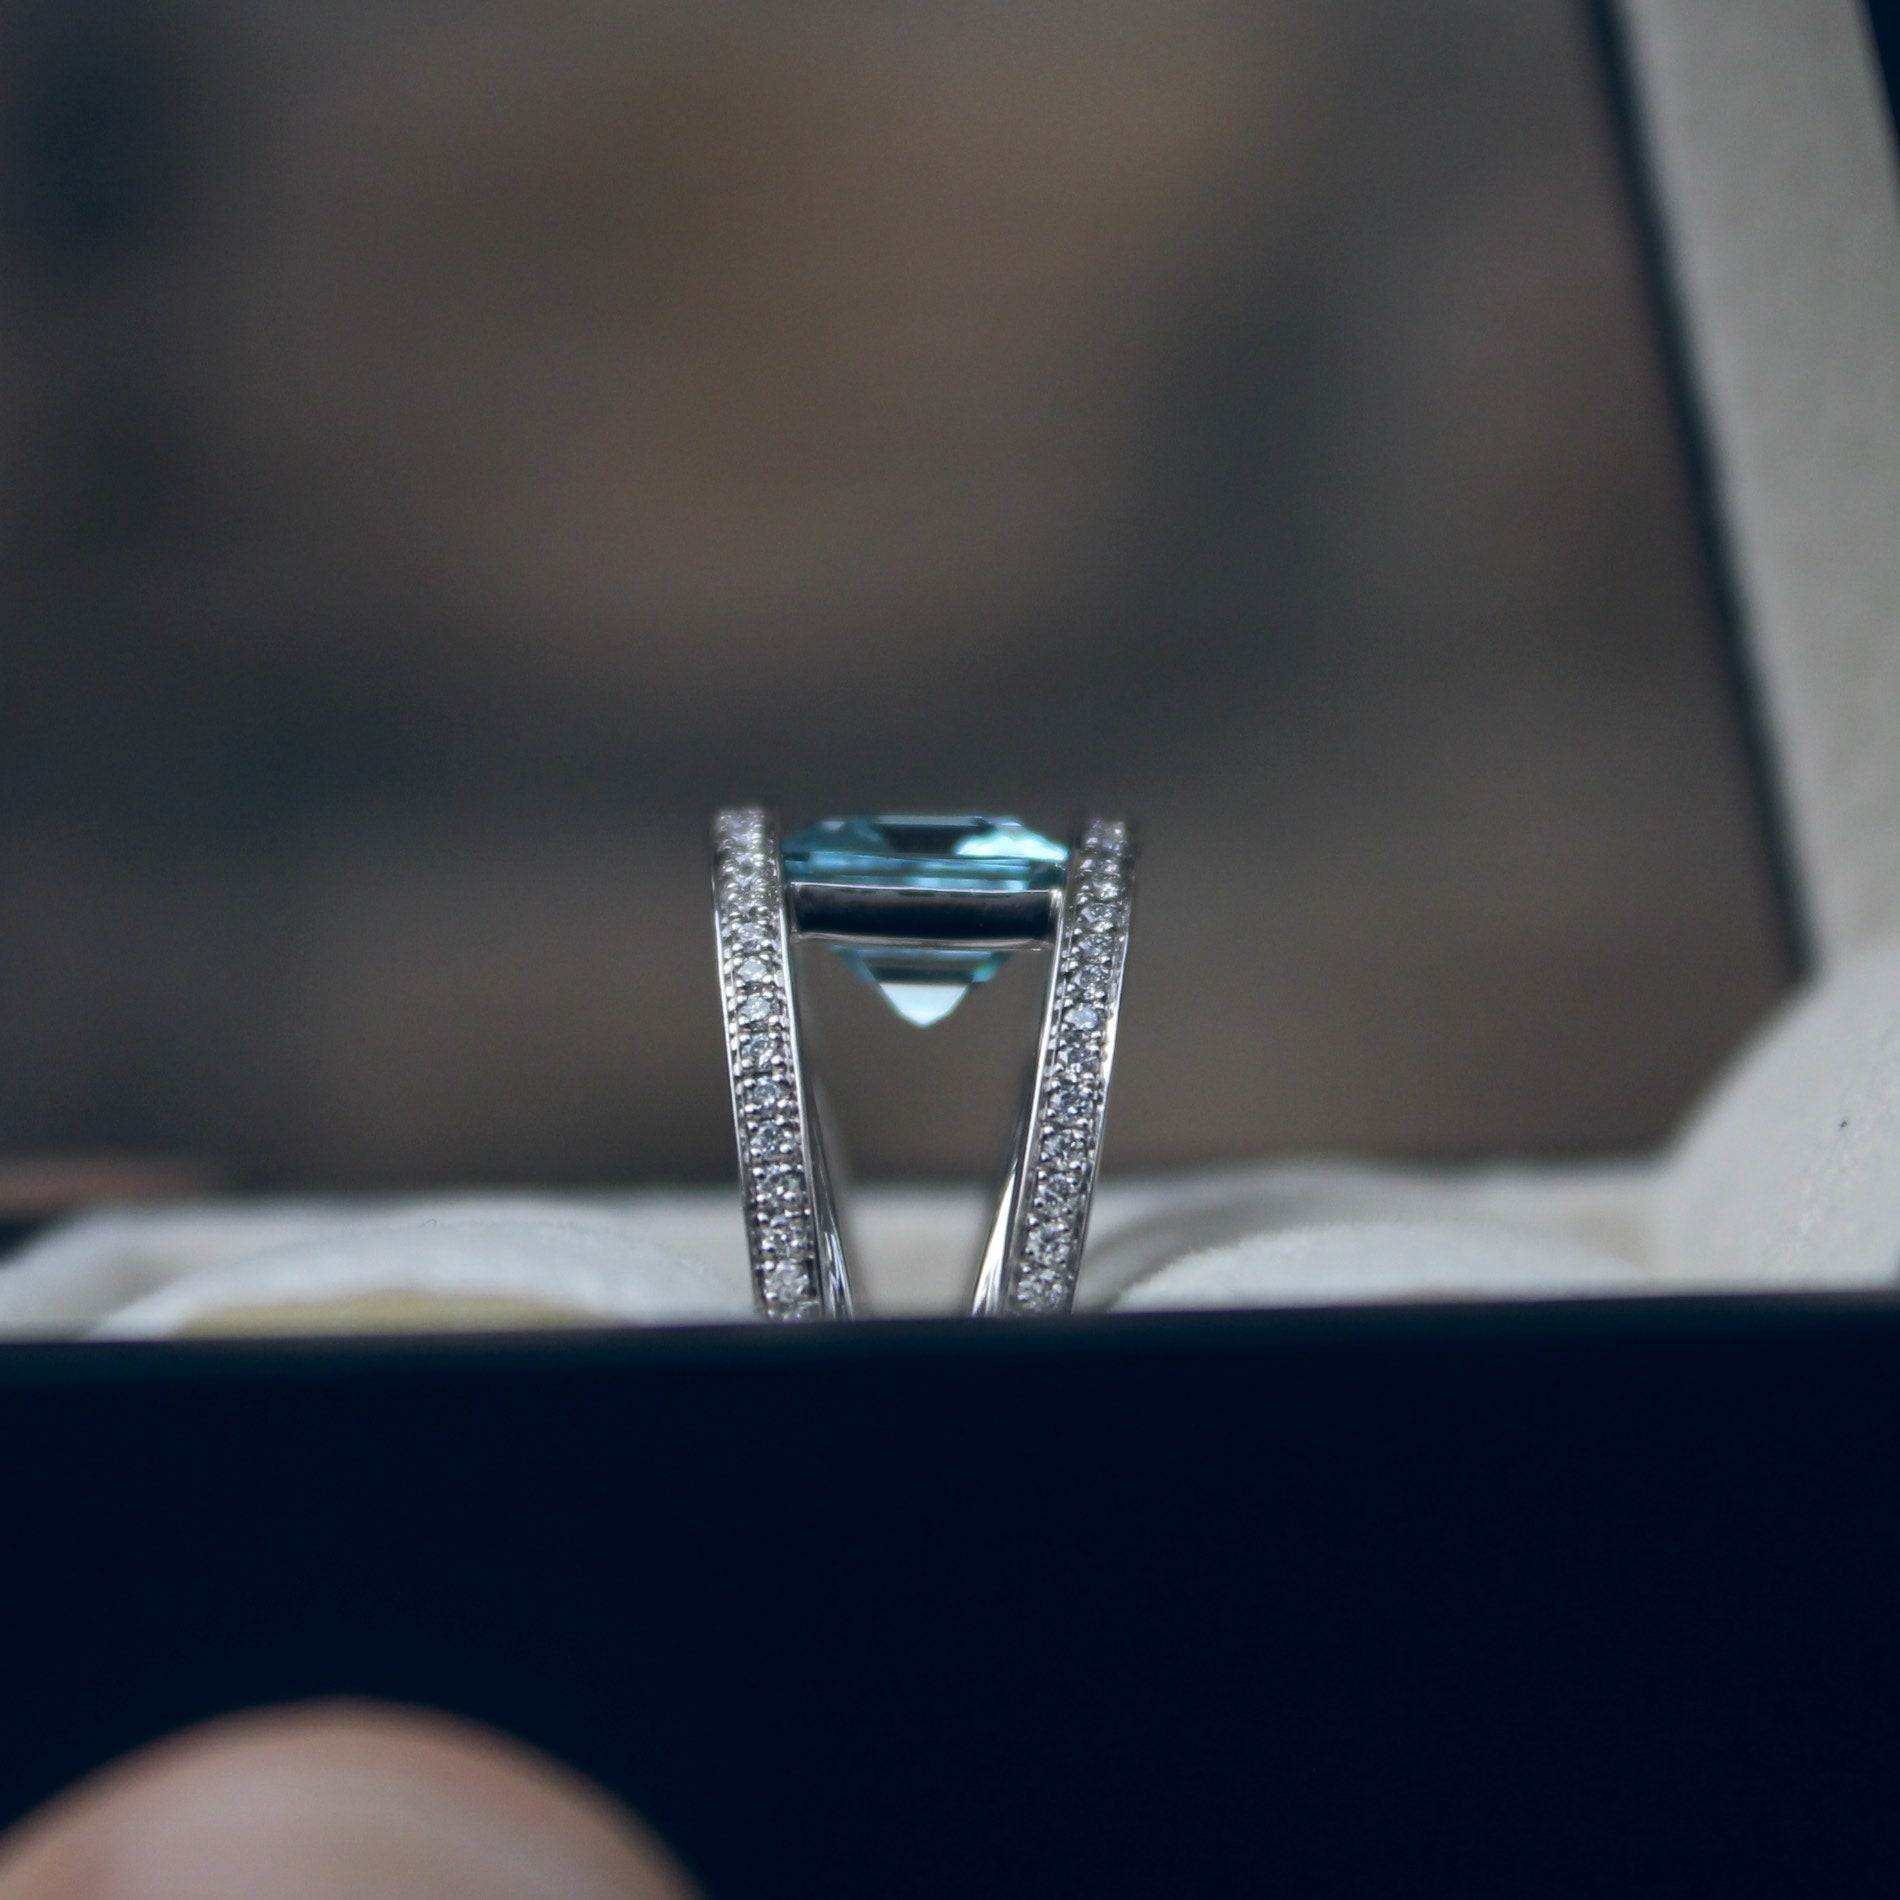 Moira Patience Fine Jewellery Bespoke Commission Aquamarine Diamond Platinum Cocktail Ring in Edinburgh Scotland